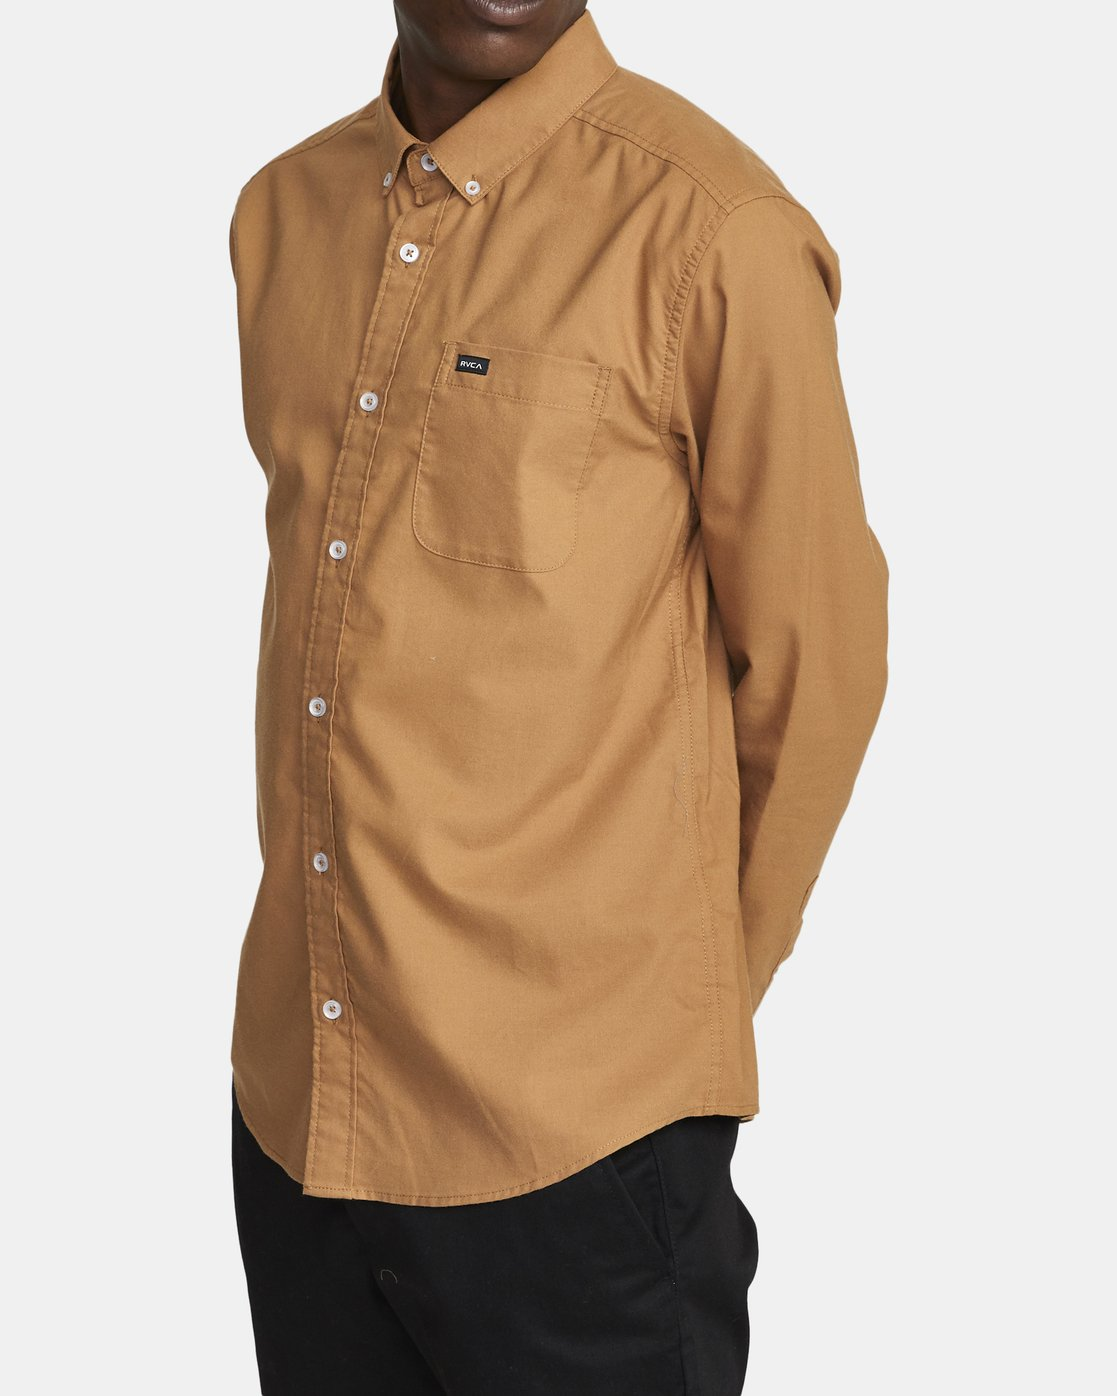 2 THATLL DO STRETCH LONG SLEEVE SHIRT Brown M551VRTD RVCA